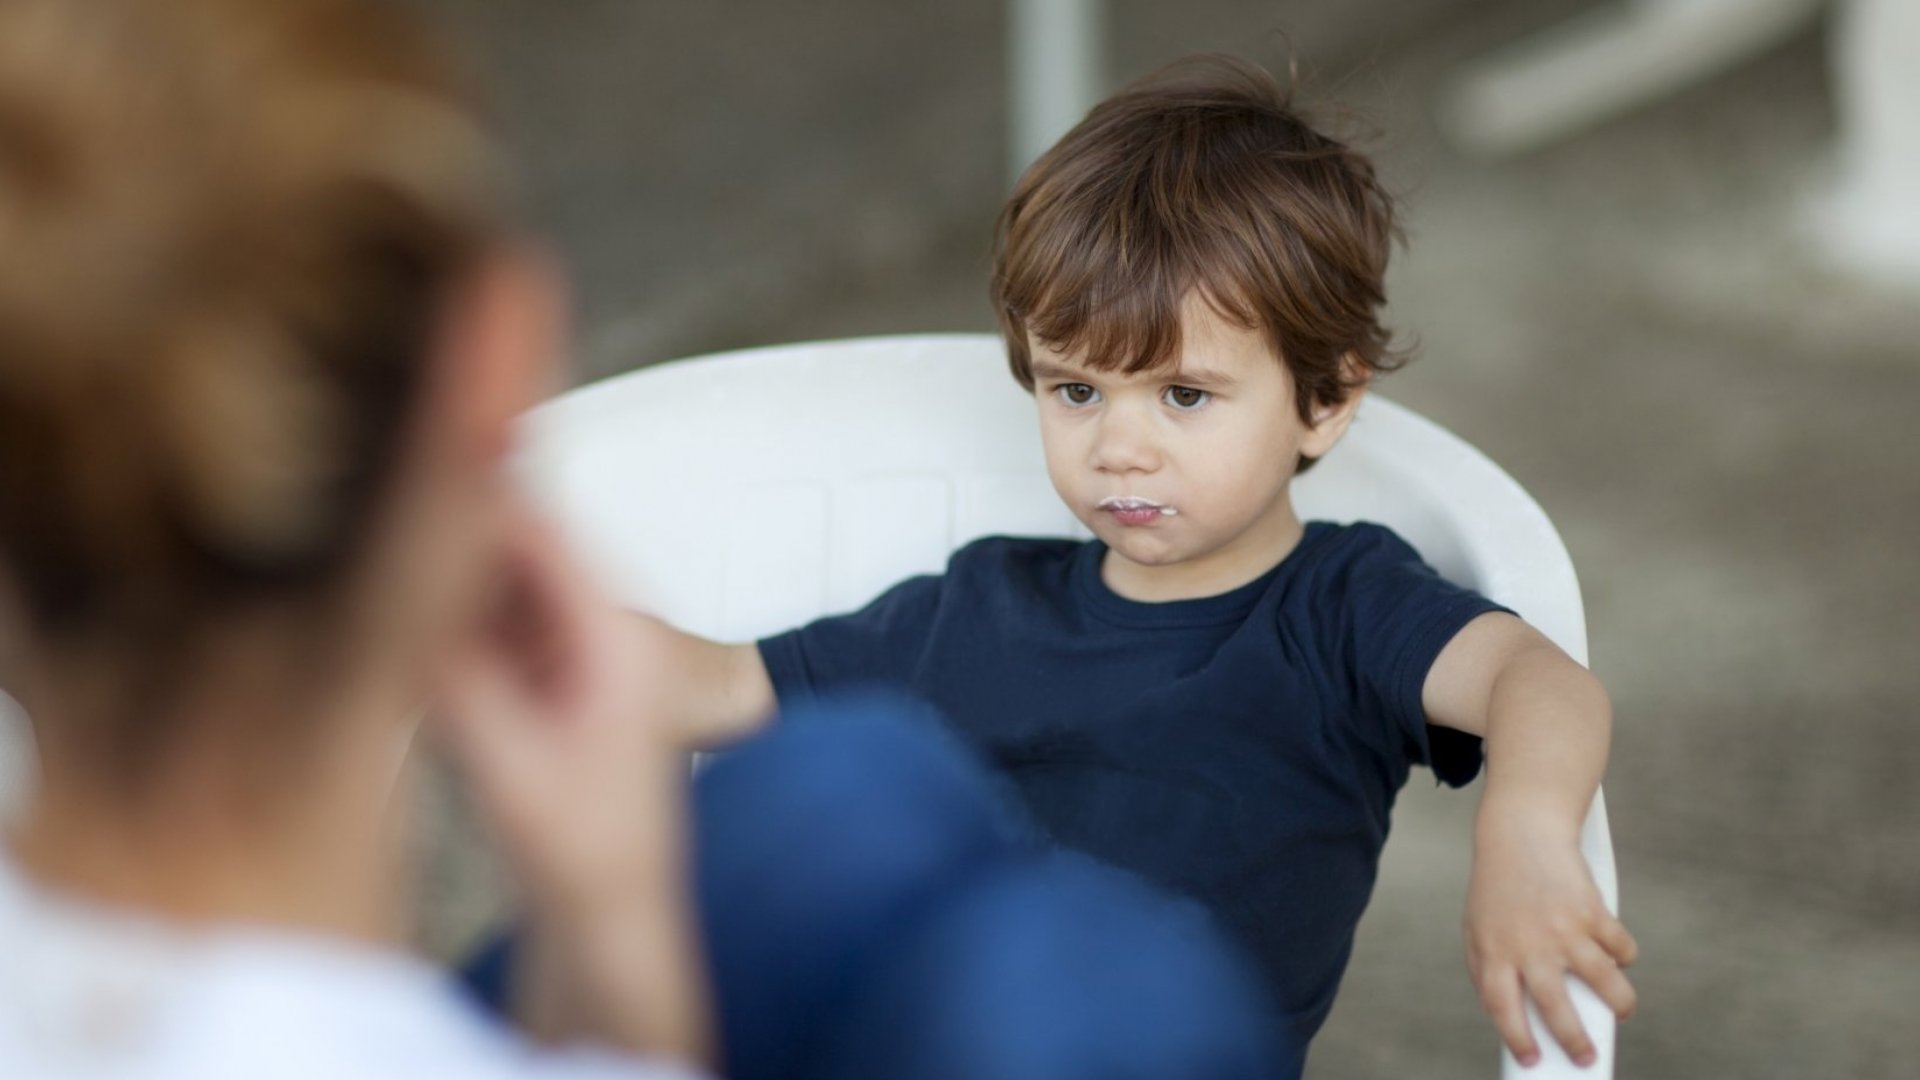 9 Things You Should Never Say to Your Kids (If You Want Them to Be Happy and Successful)